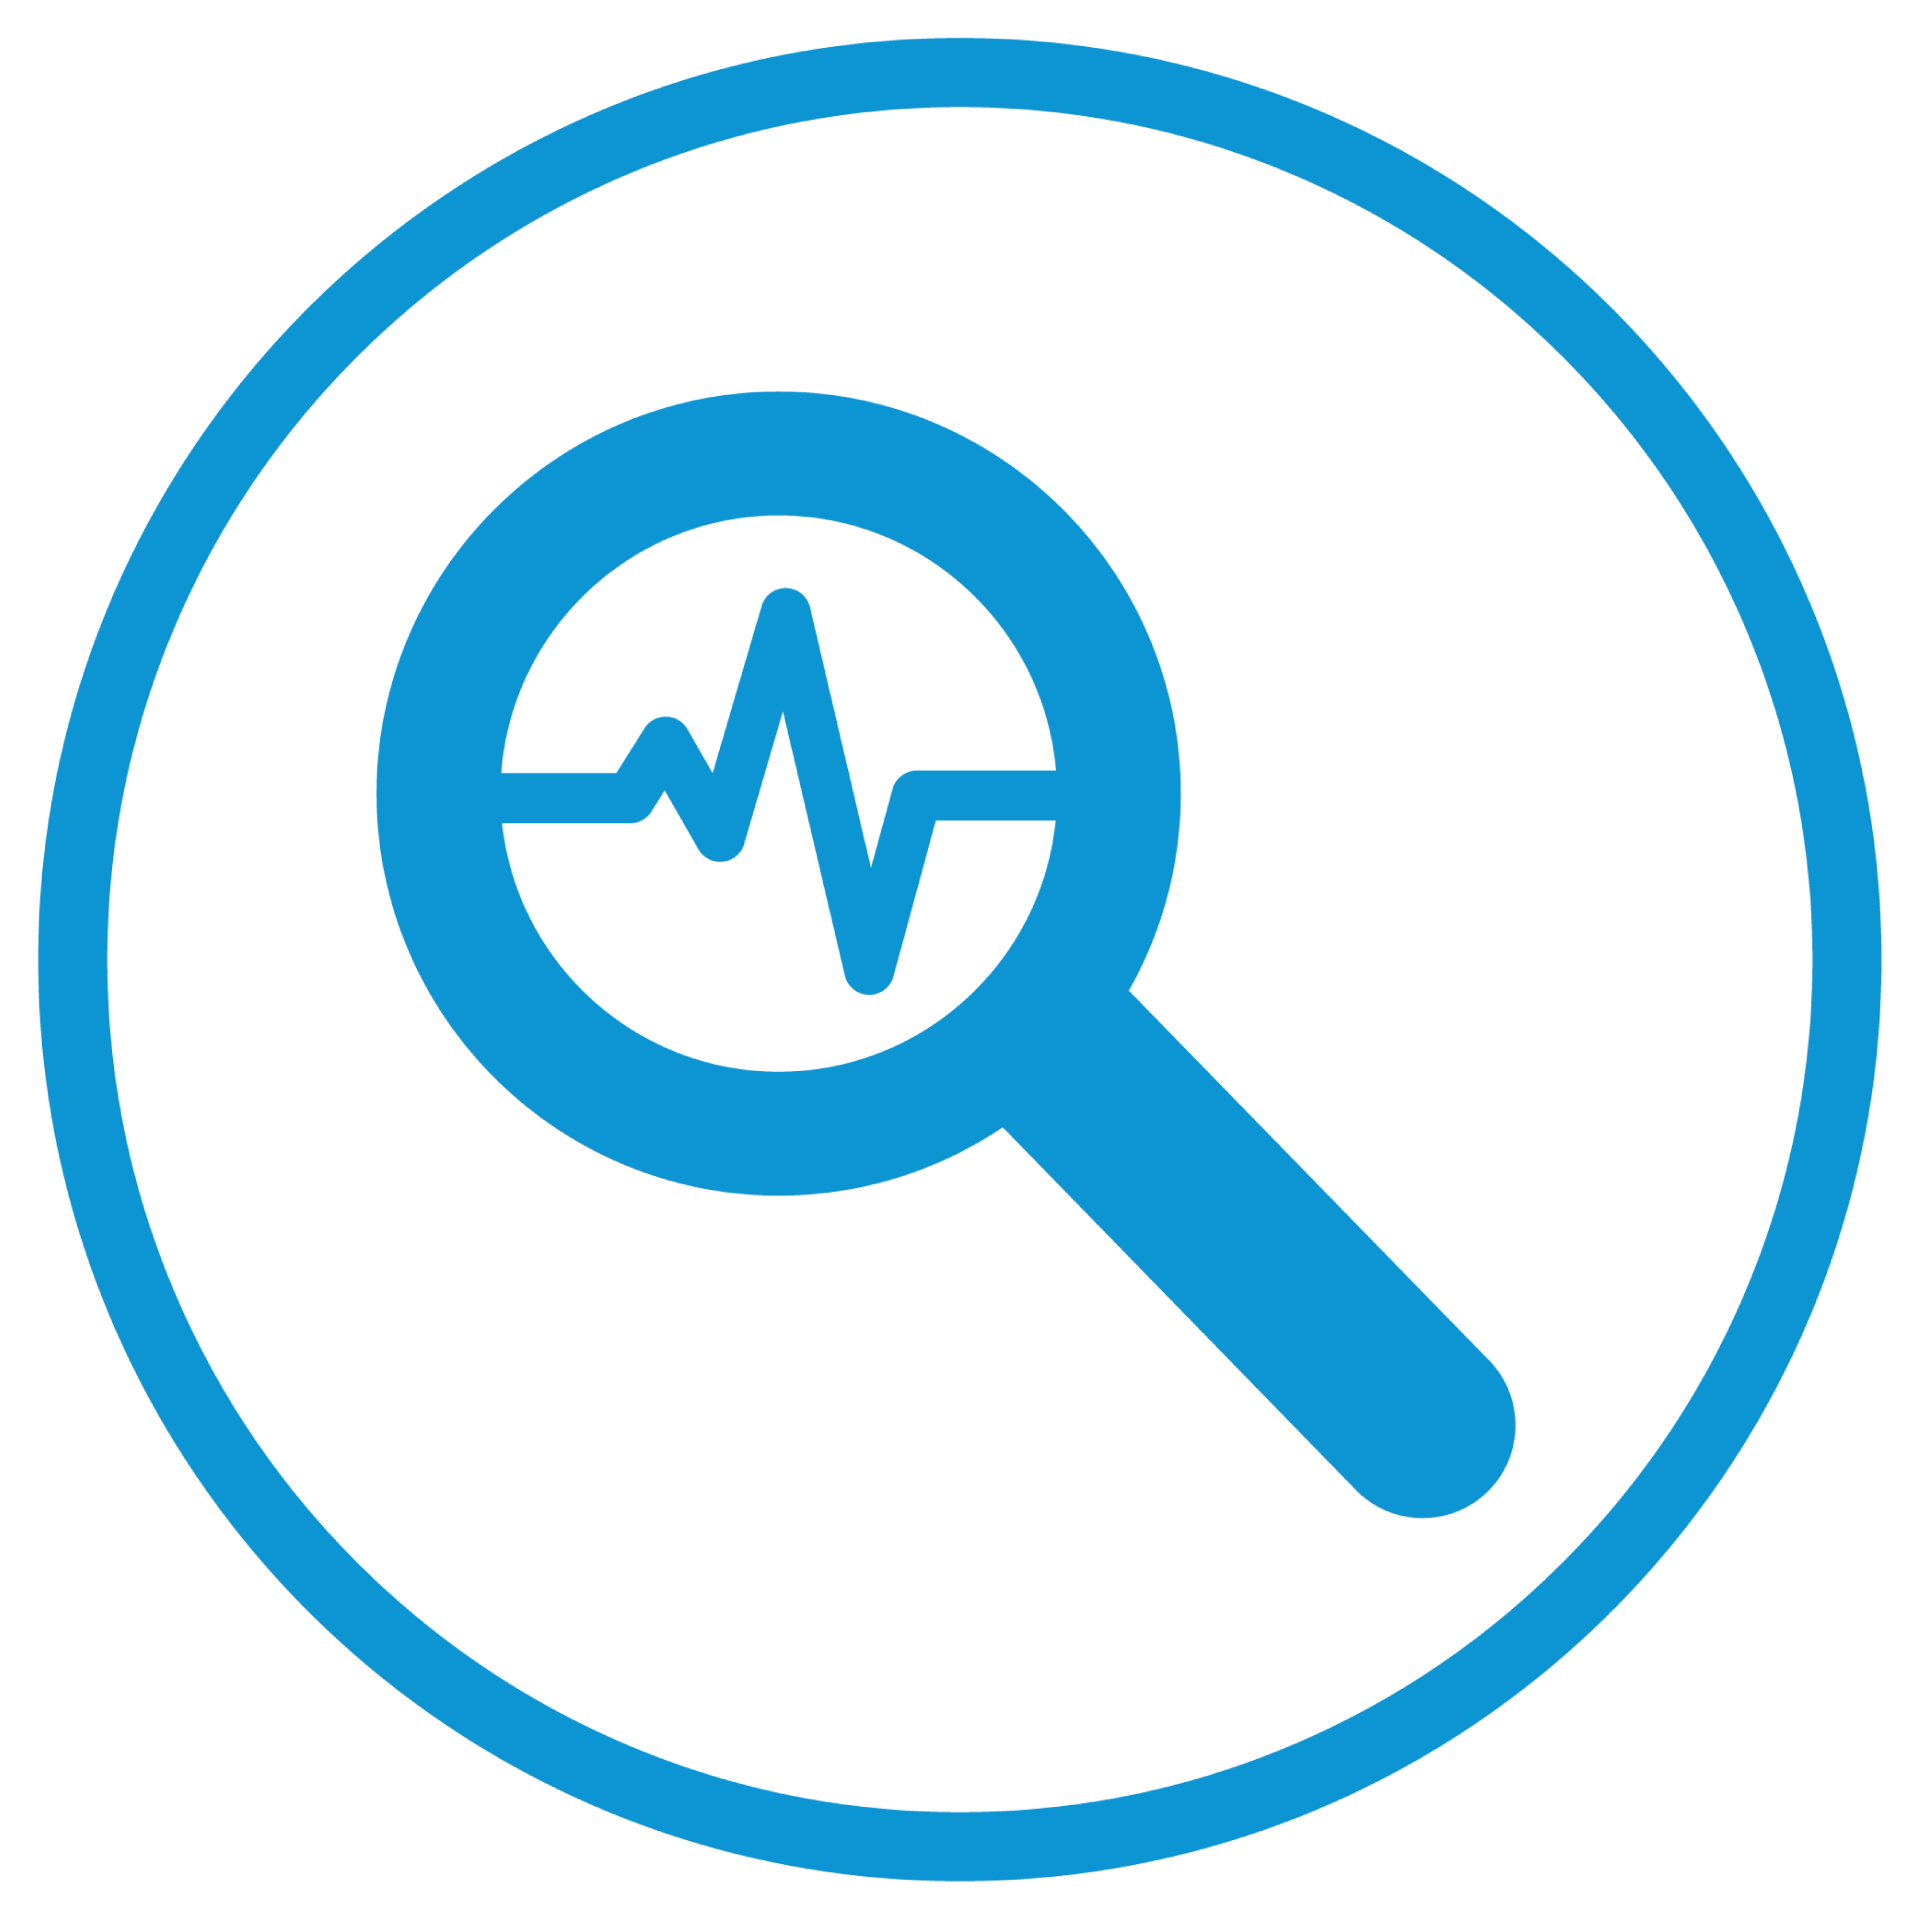 AmbulatoryIcon_Patient focus_blue_magnifying glass